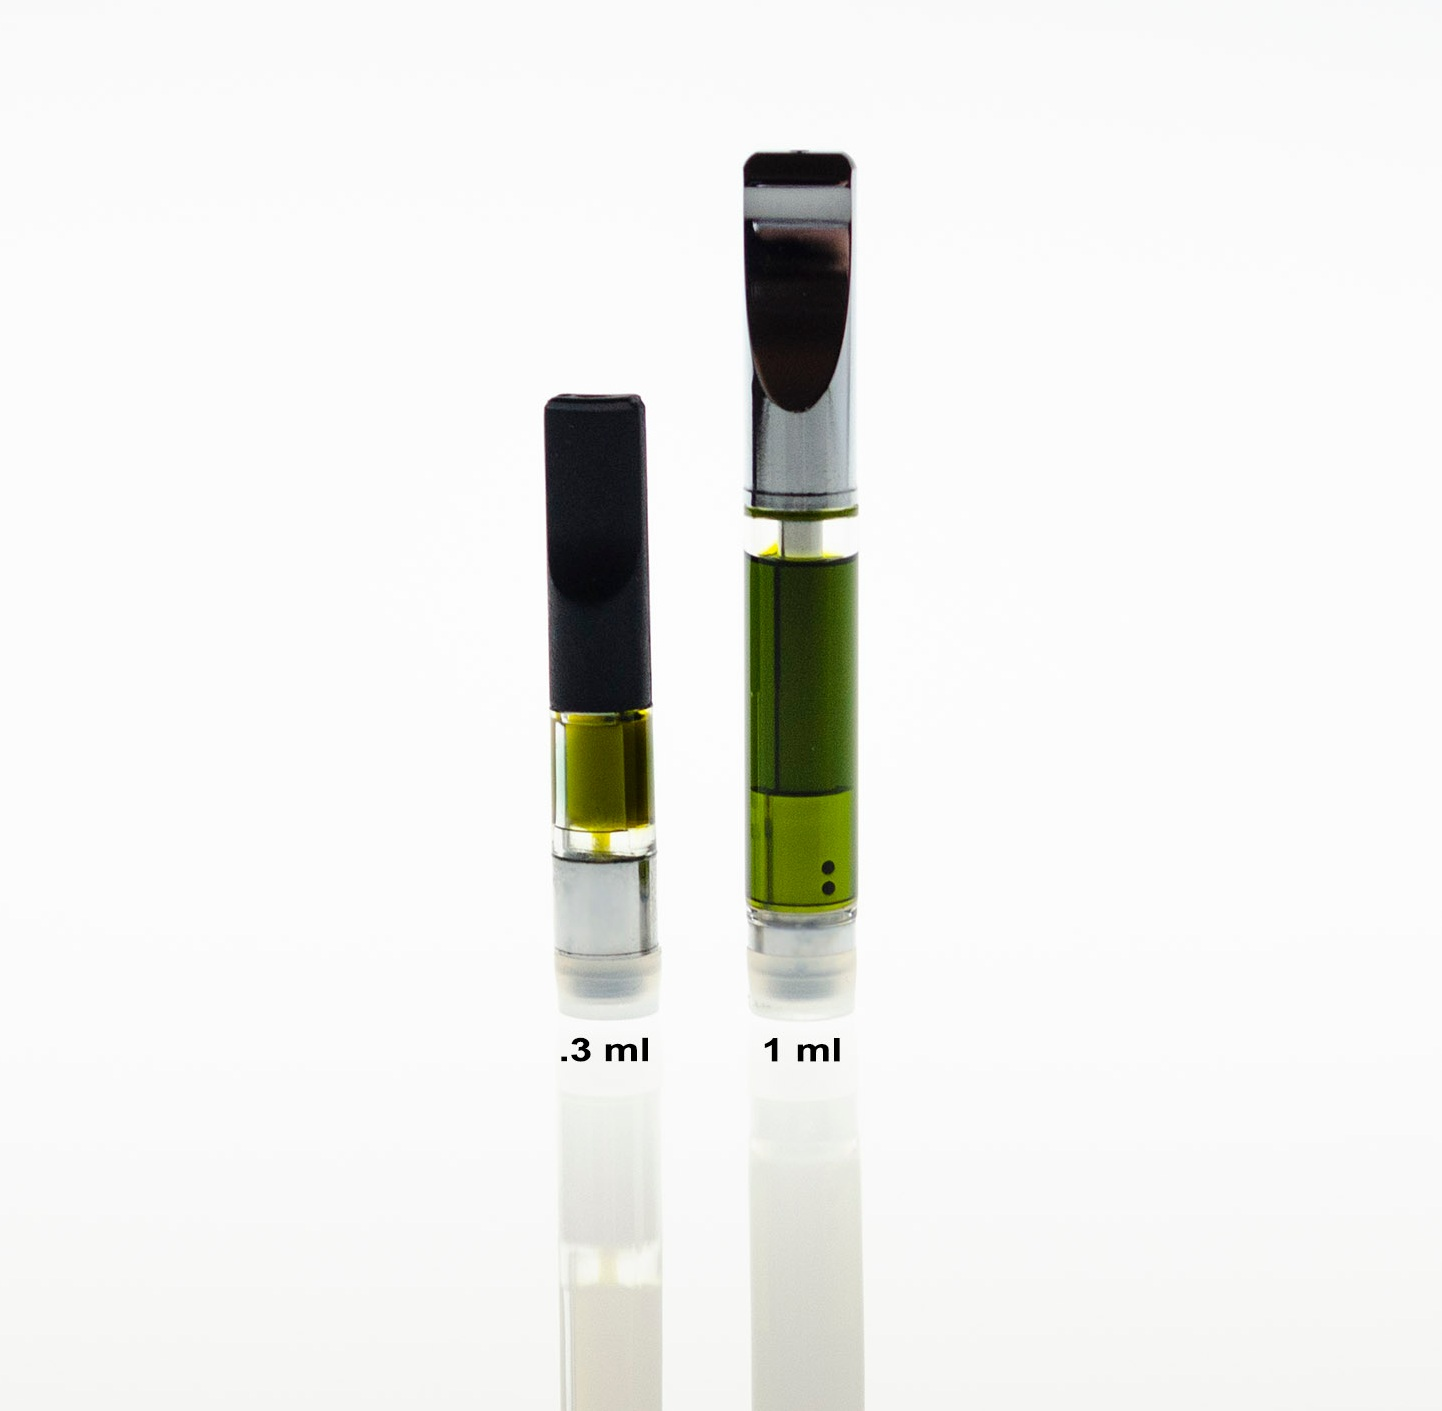 Vape Cartridges - Available in .3mL and 1mL. New strains coming soon.